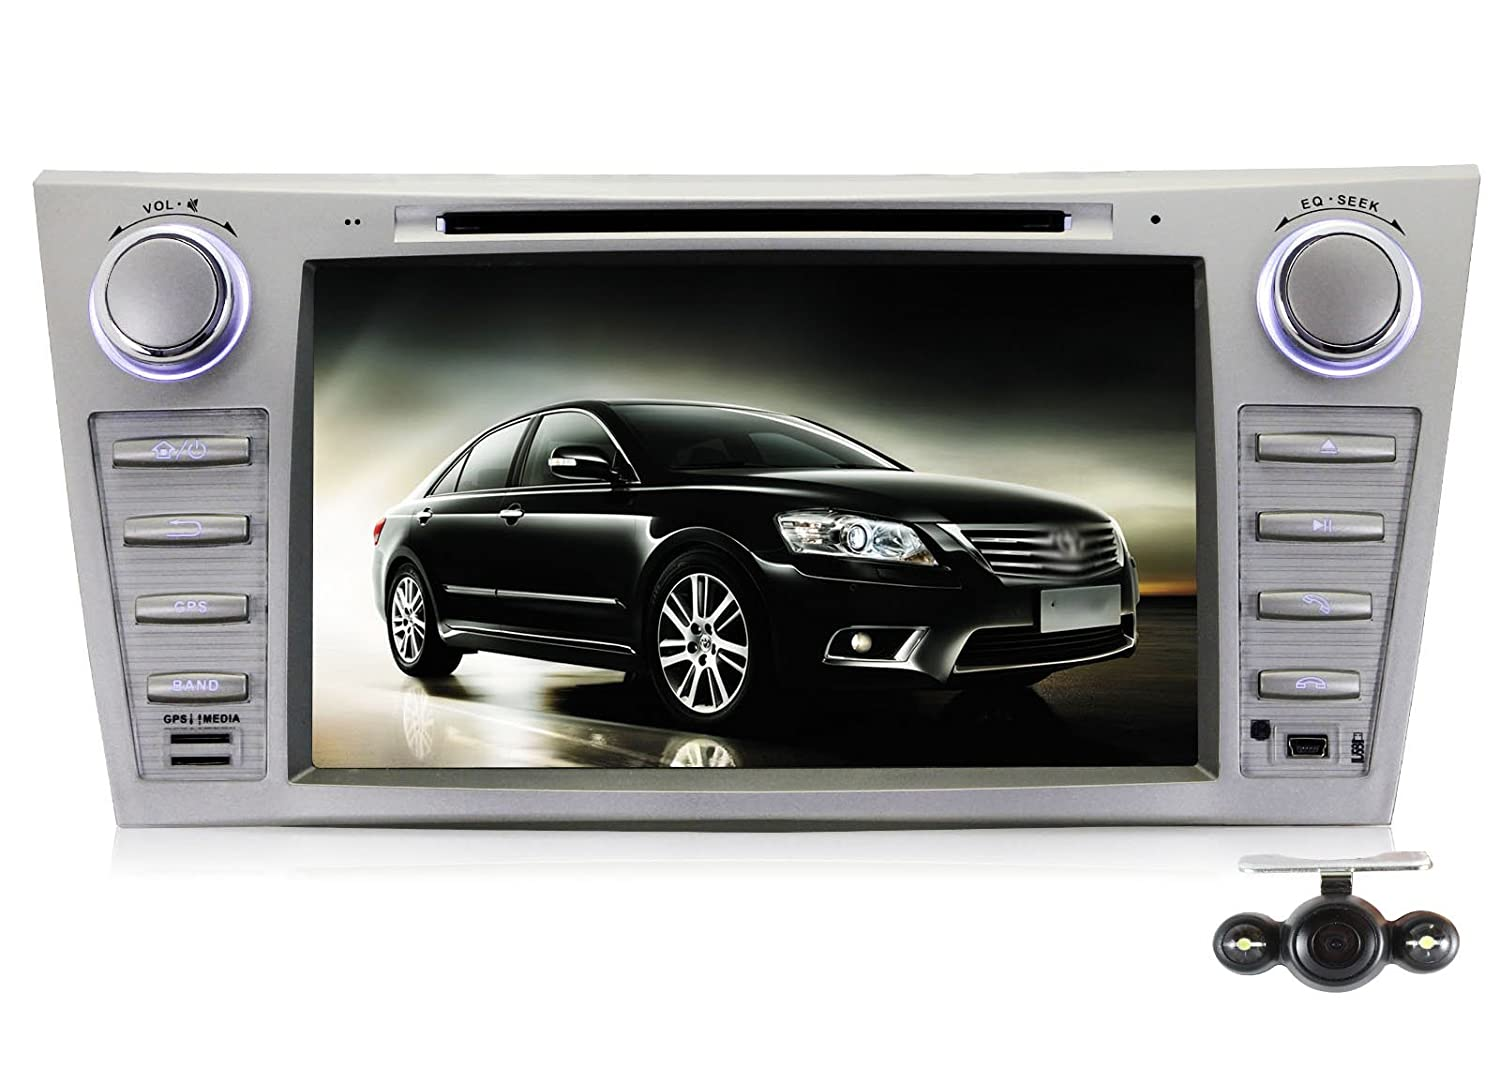 Pumpkin 8 inch for Toyota Camry/Aurion 2007-2011 2DIN In Dash HD Touch Screen Car DVD Player GPS Navigation Stereo Support Bluetooth/SD/USB/Ipod/FM/AM Radio/DVR/3G/AV-IN/1080P with Free Reverse Backup Camera as Gift free shipping car refitting dvd frame dvd panel dash kit fascia radio frame audio frame for 2012 kia k3 2din chinese ca1016